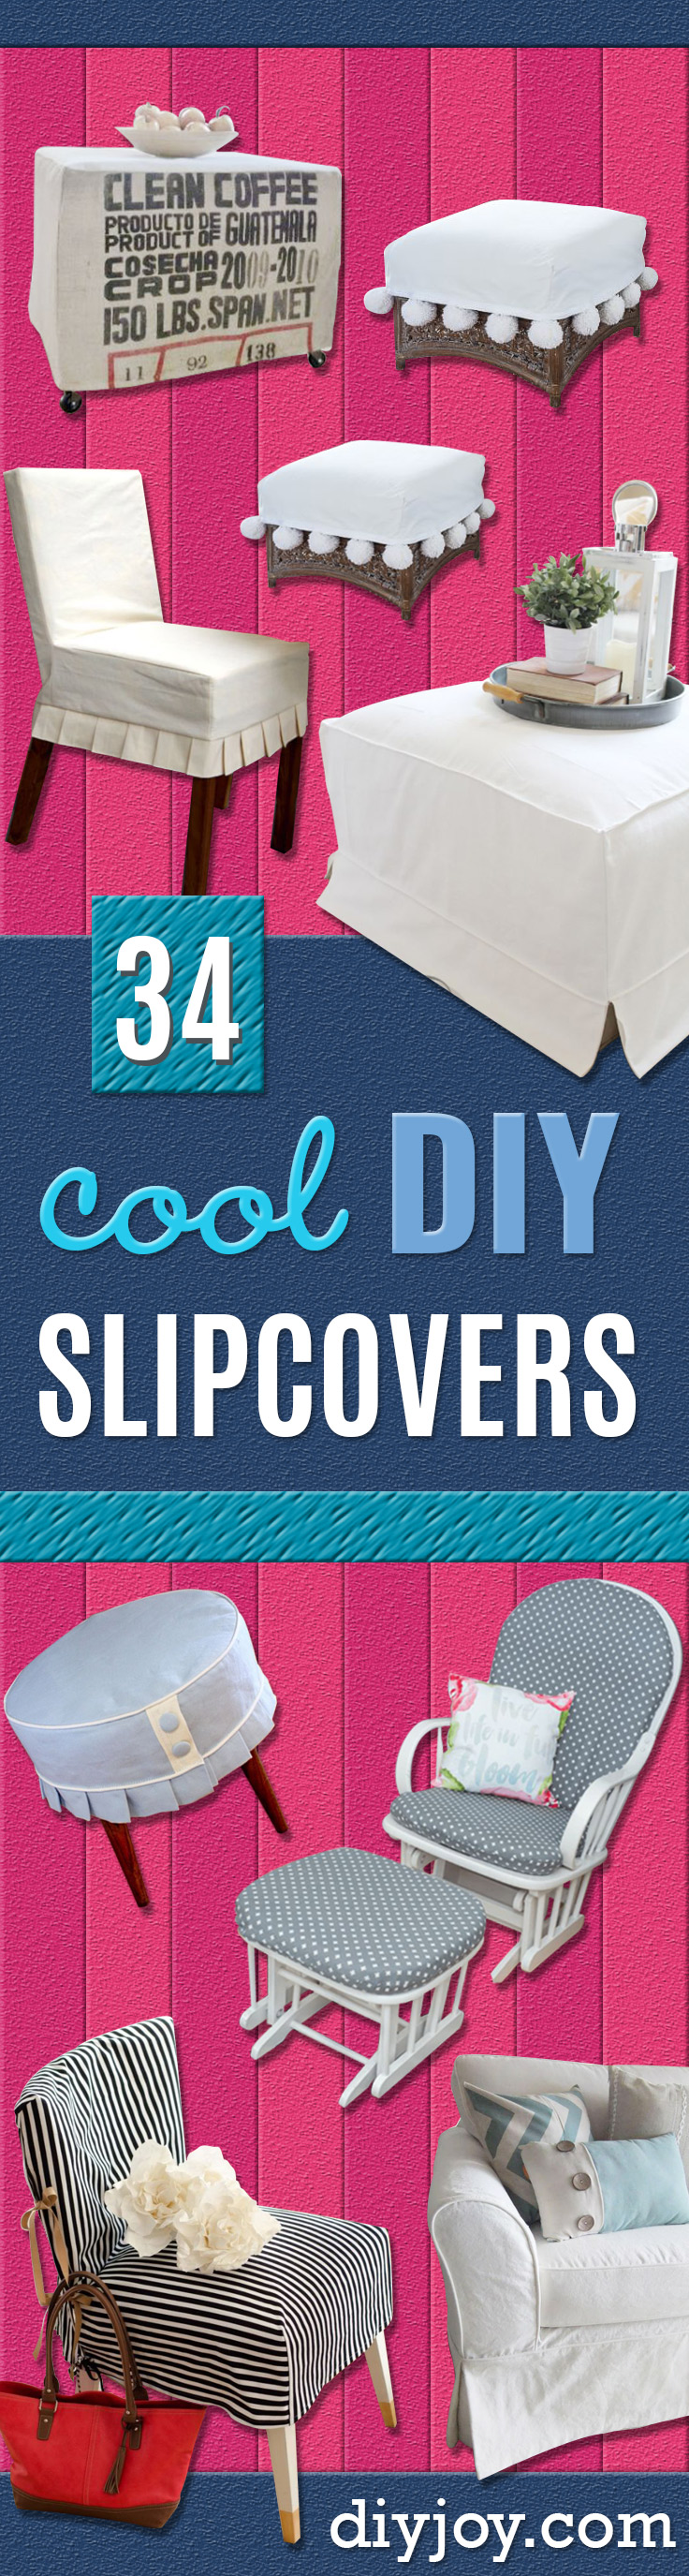 DIY Slipcovers - Do It Yourself Slip Covers For Furniture - No Sew Ideas, Easy Fabrics Four Couch and Sofa Cover - Chair Projects and Ideas, How To Make a Slip cover with step by step tutorial and instructions - Cool DIY Home and Living Room Decor http://diyjoy.com/diy-slipcovers